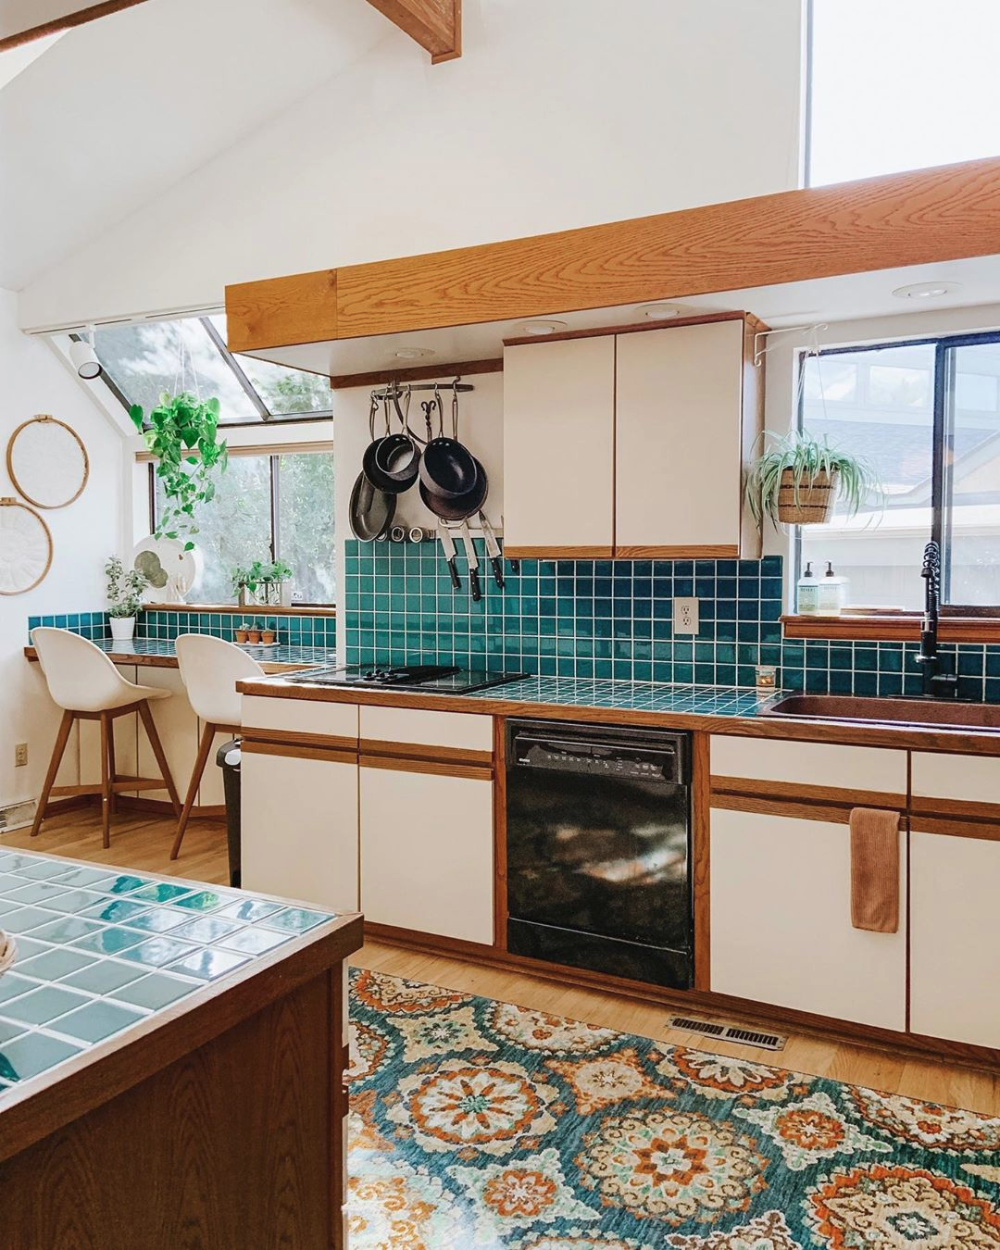 Simple Rules For Choosing The Perfect Rug Size For Your Interior Kitchen Concepts Kitchen Rules Kitchen Backsplash Trends